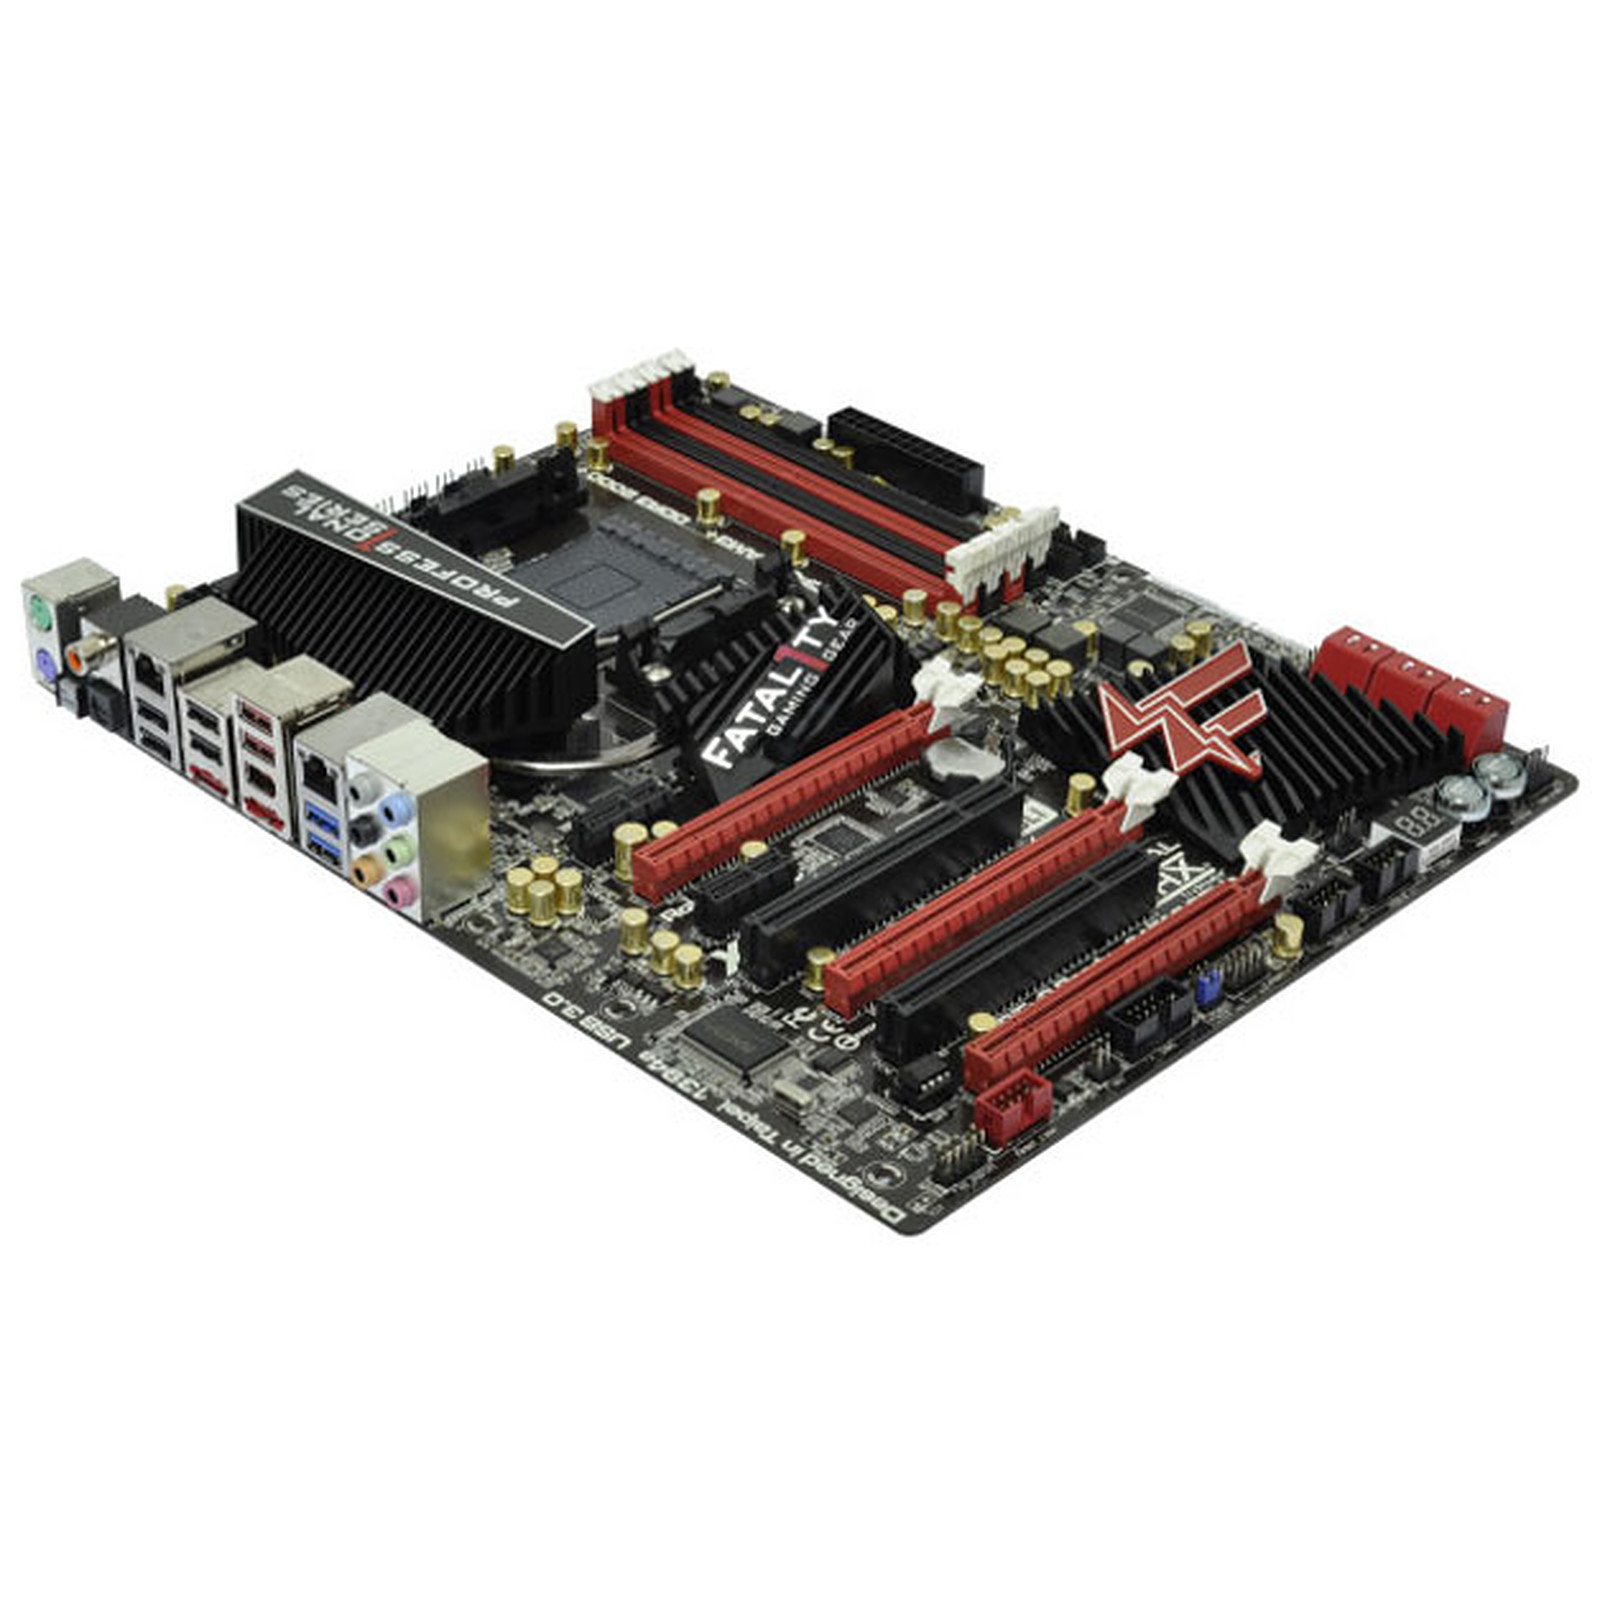 ASRock Fatal1ty 990FX Professional Broadcom LAN Drivers for Windows Mac